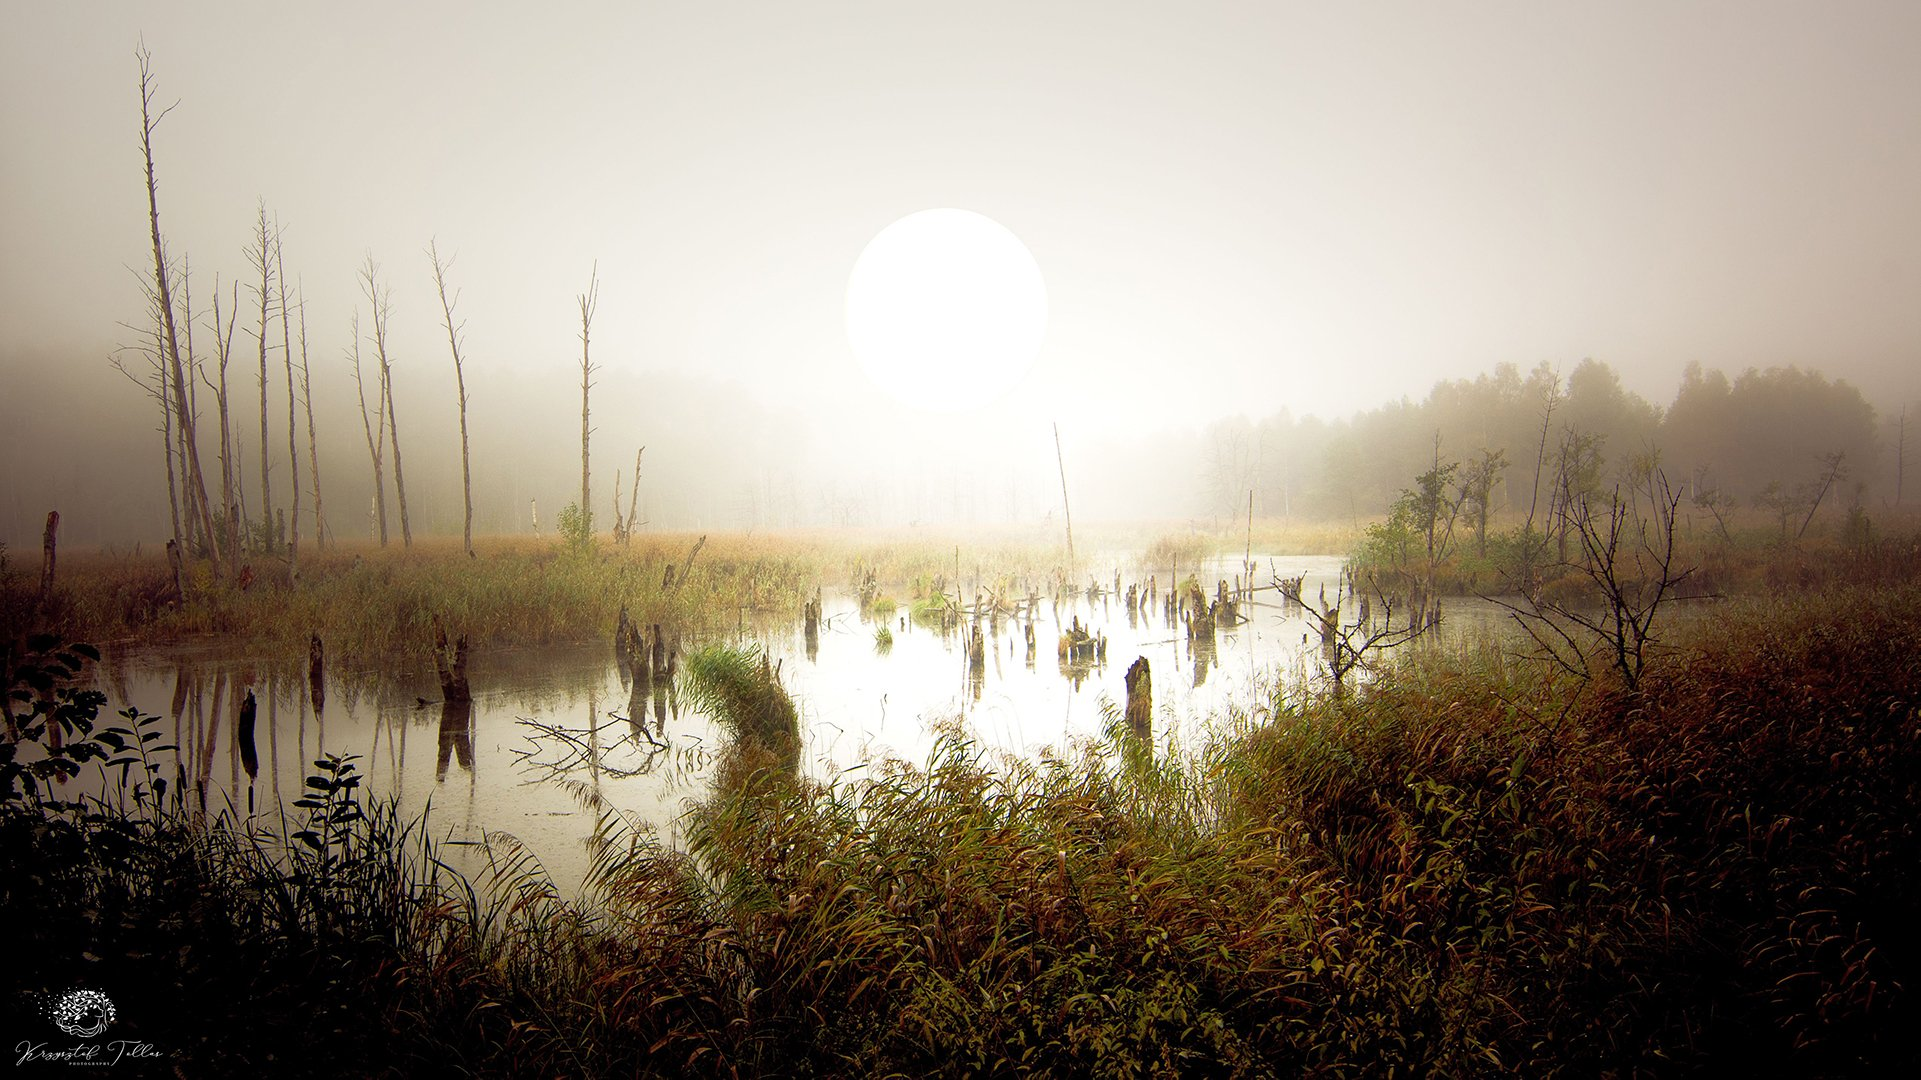 marshland, fog,landscape,autumn, nature, sky, sun, forest, trees, dawn, mist, water, nikon, swamp, light, , Tollas Krzysztof